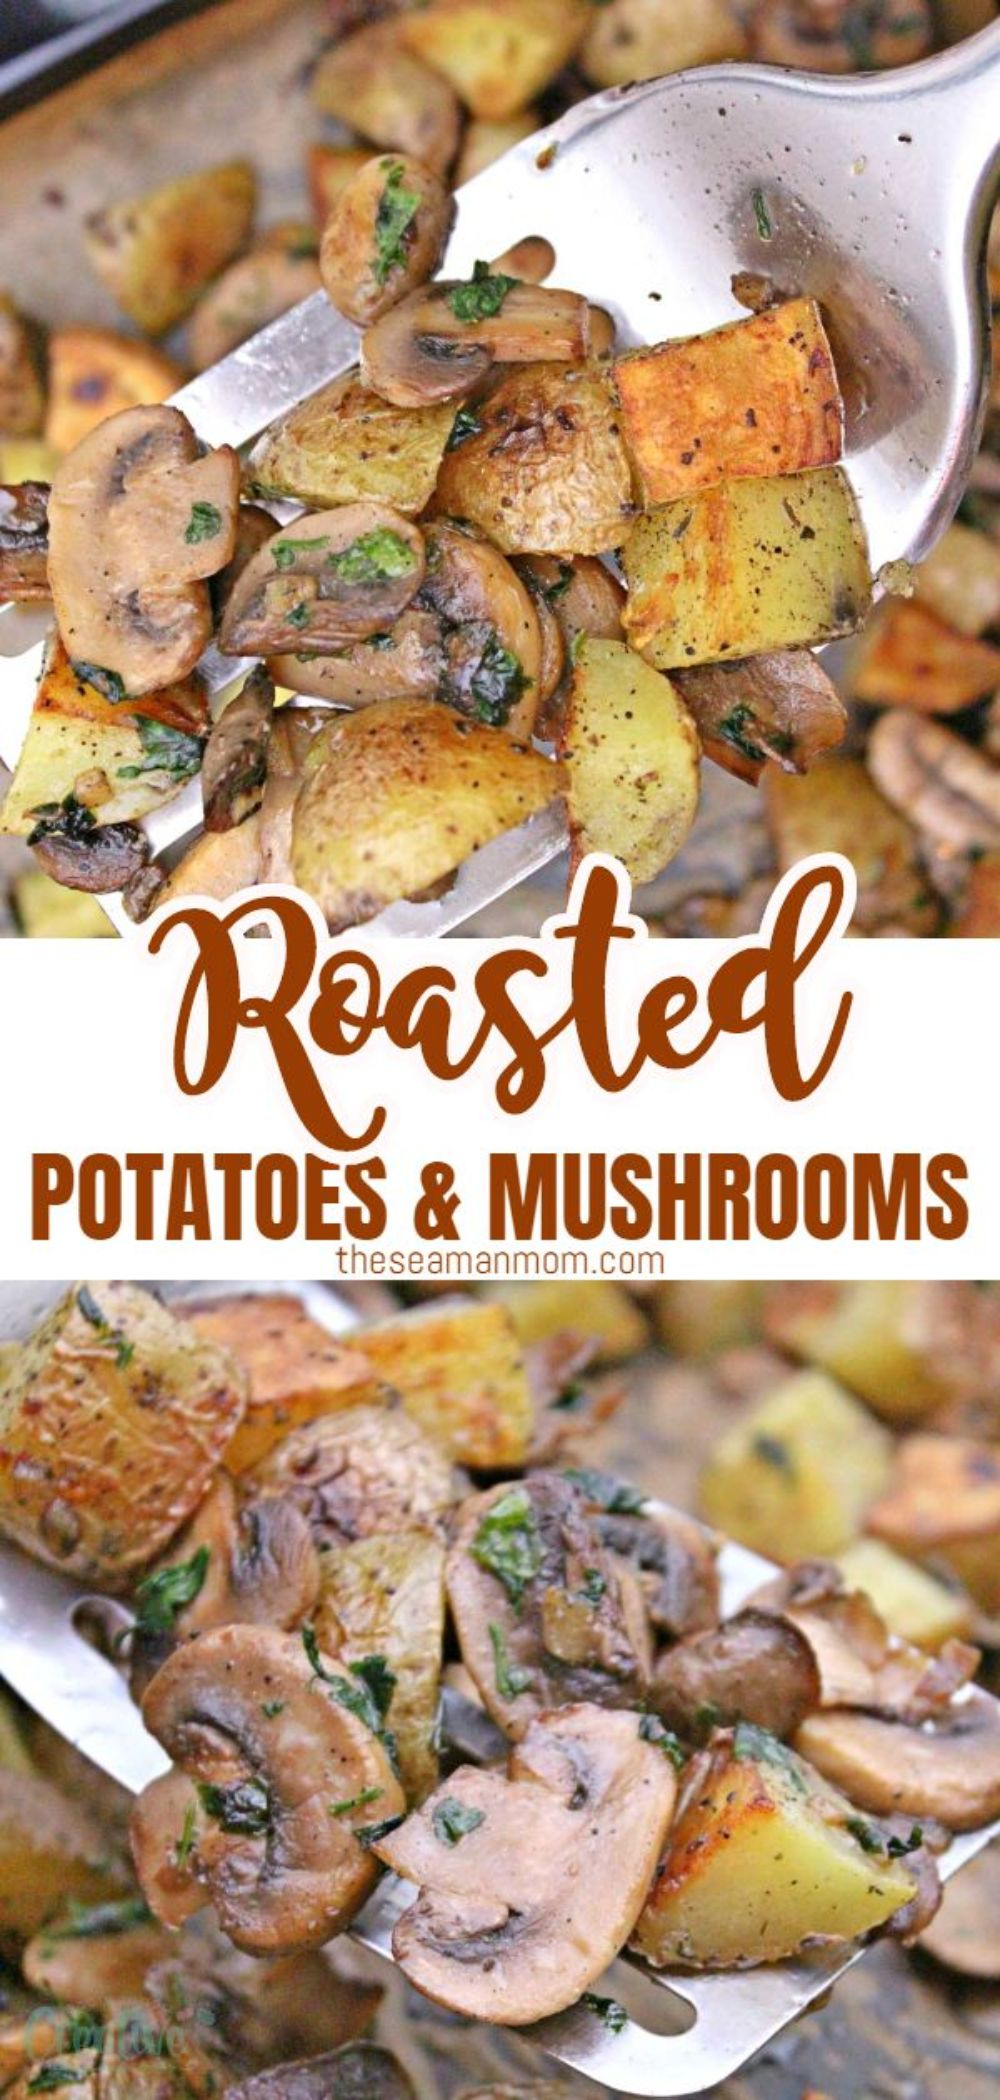 This roasted potatoes and mushrooms recipe makes a nice side dish to bake alongside a roast in the oven but it's also great as a meal on its own! The ingredients are simple but the flavors are incredible and the whole family will enjoy these tastypotatoes and mushrooms! via @petroneagu